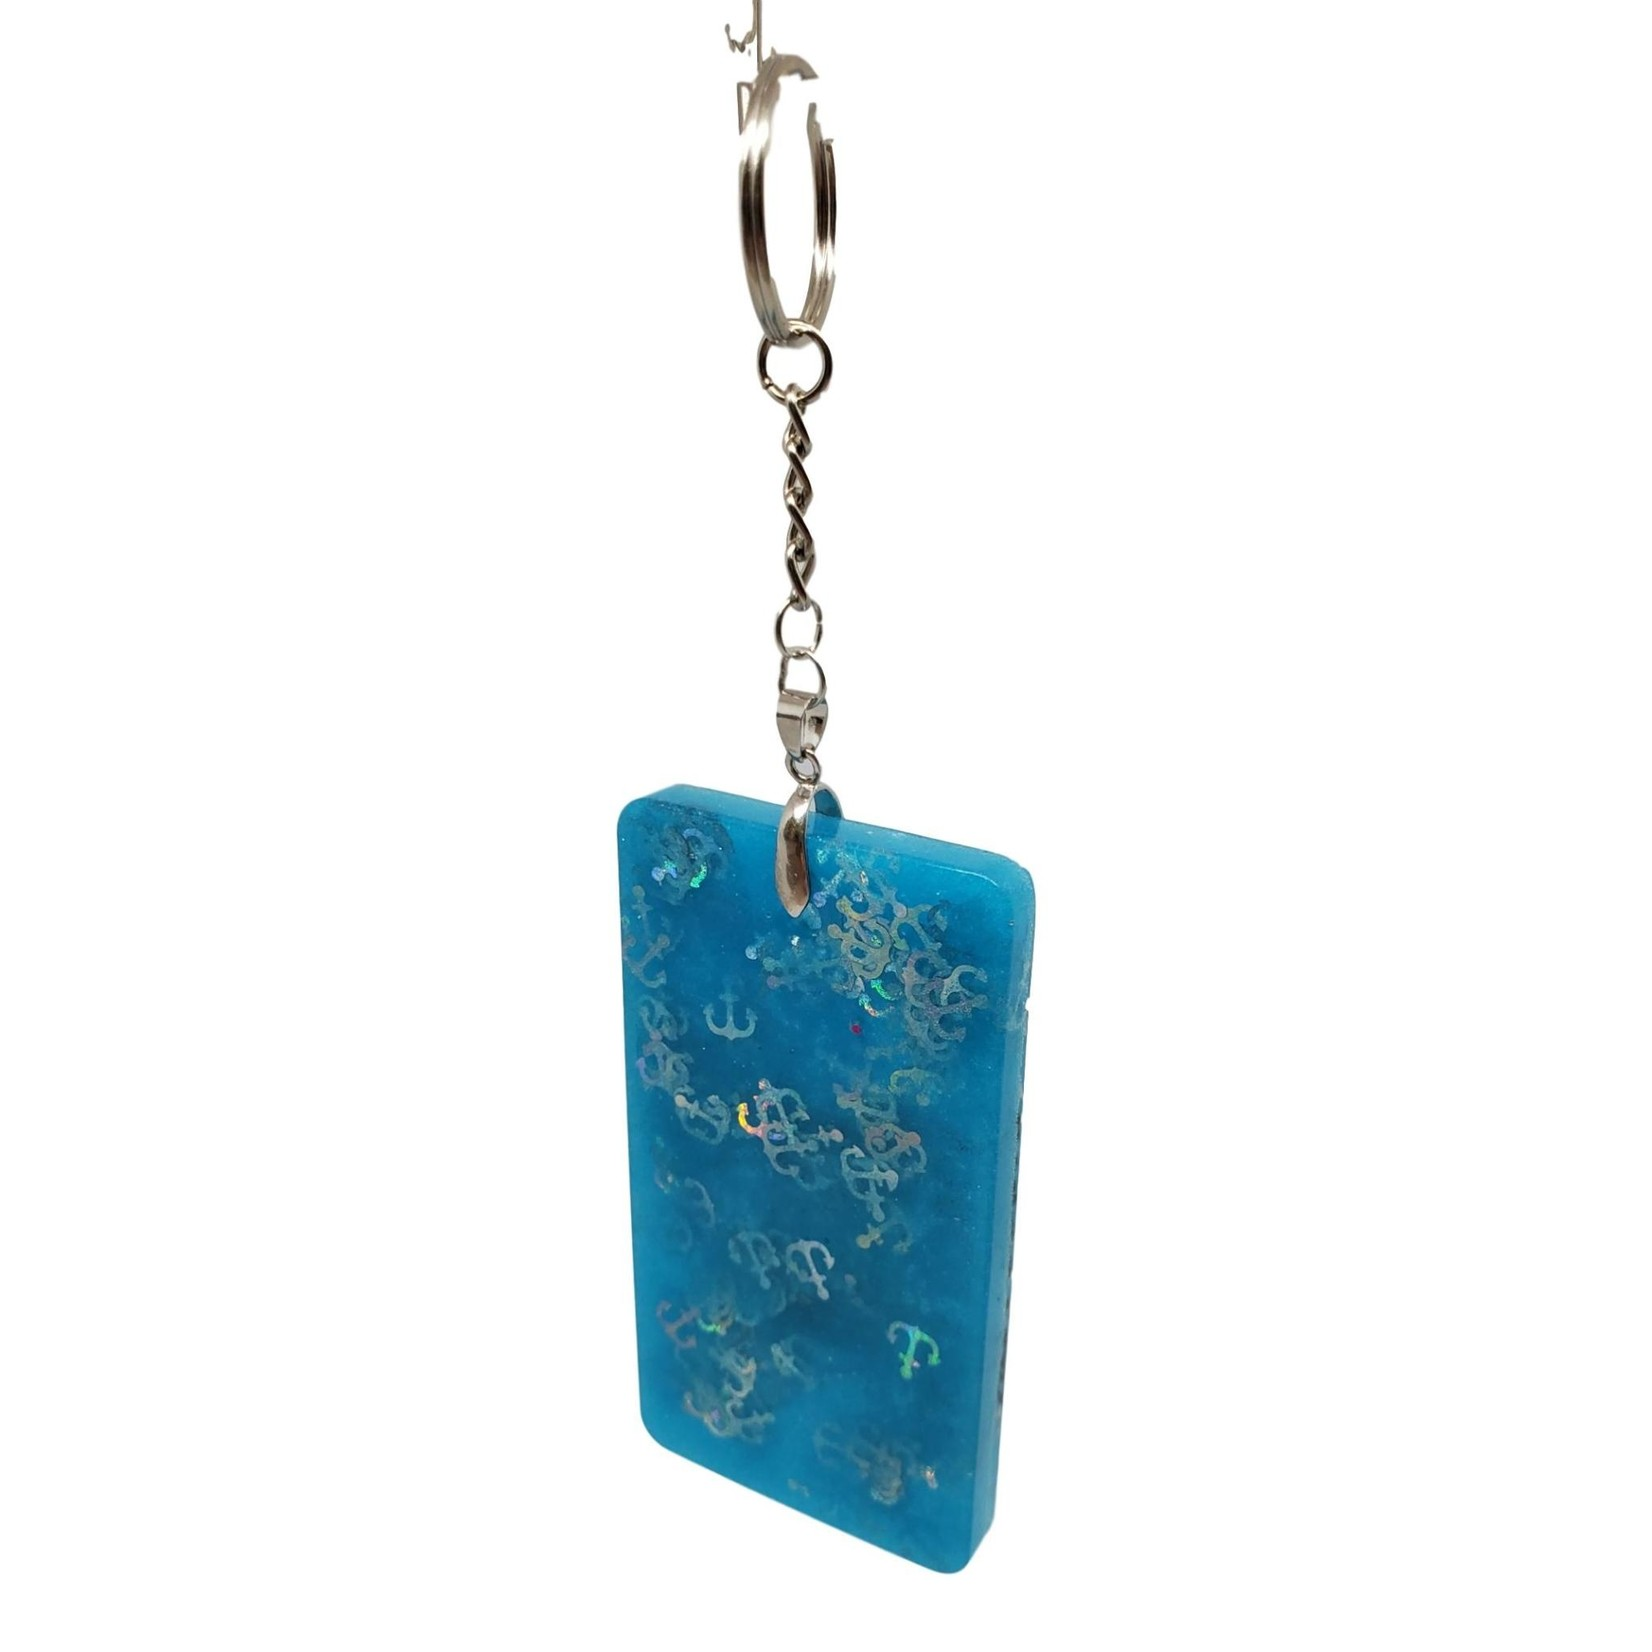 """East Coast Sirens """"Life's Tough Just Roll With It"""" Key Chain/Luggage Tag"""